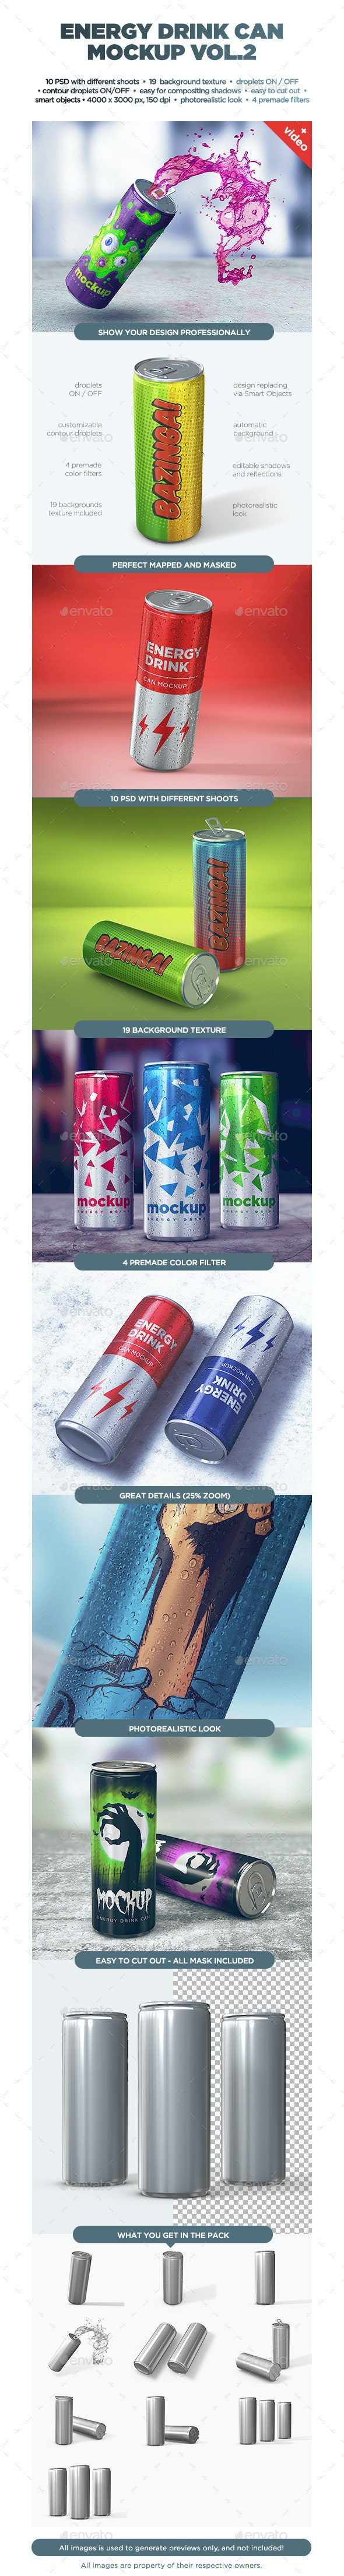 Energy Drink Can Mockup vol.2 - Food and Drink Packaging